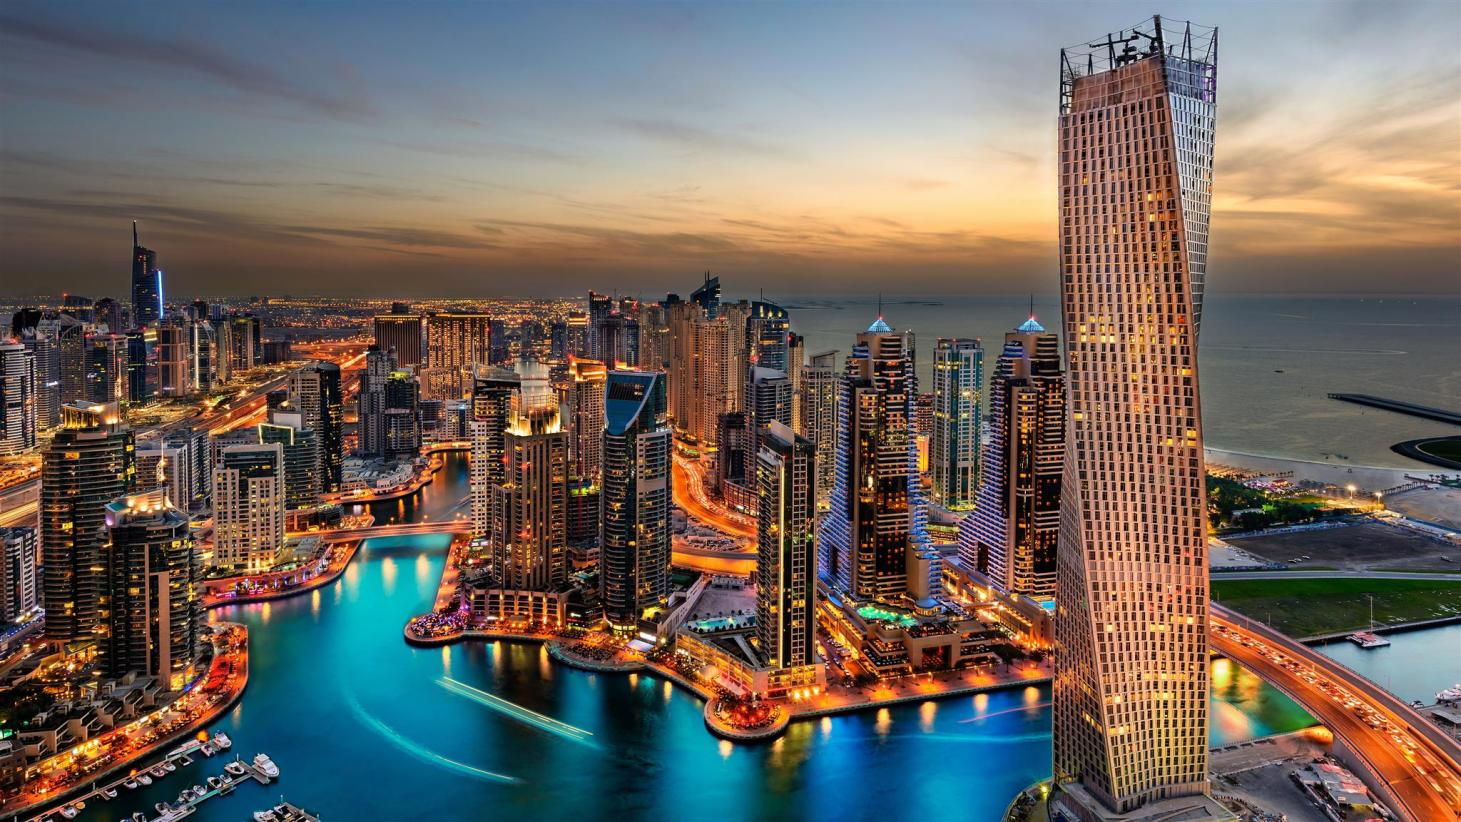 Top 10 Areas With Off-Plan Property in Dubai 2019